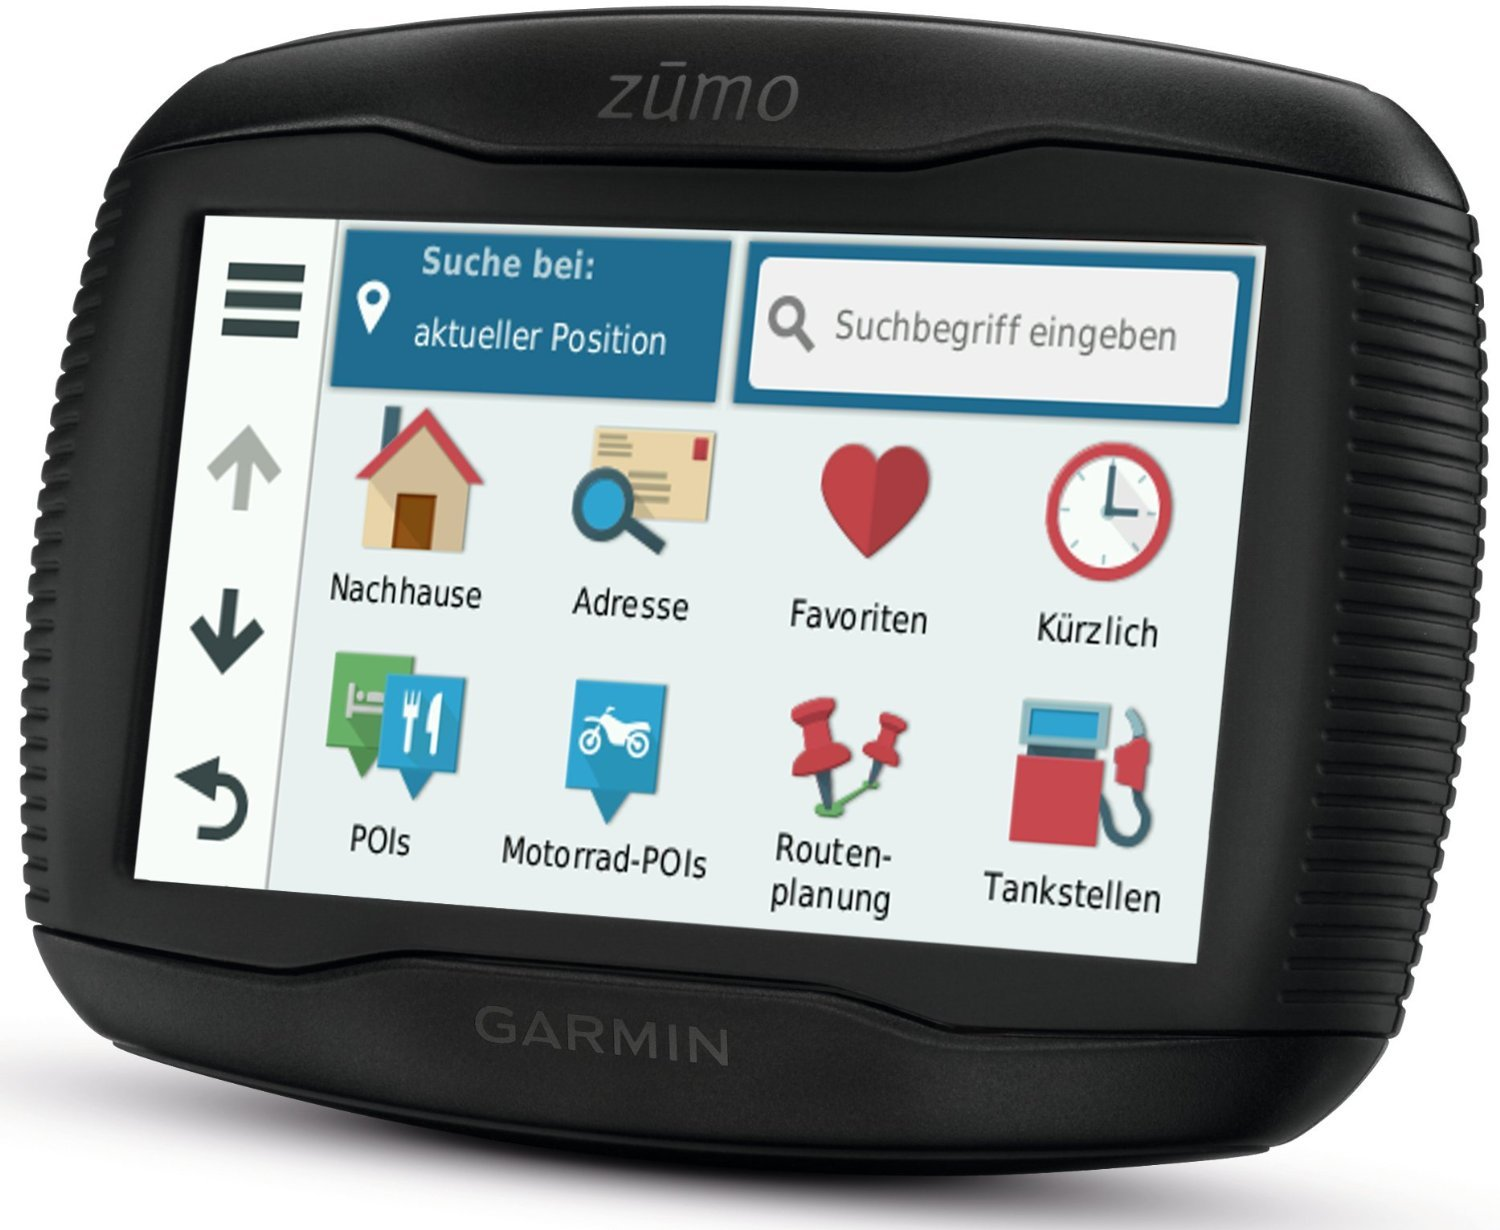 garmin zumo 395lm test navigationssystem. Black Bedroom Furniture Sets. Home Design Ideas